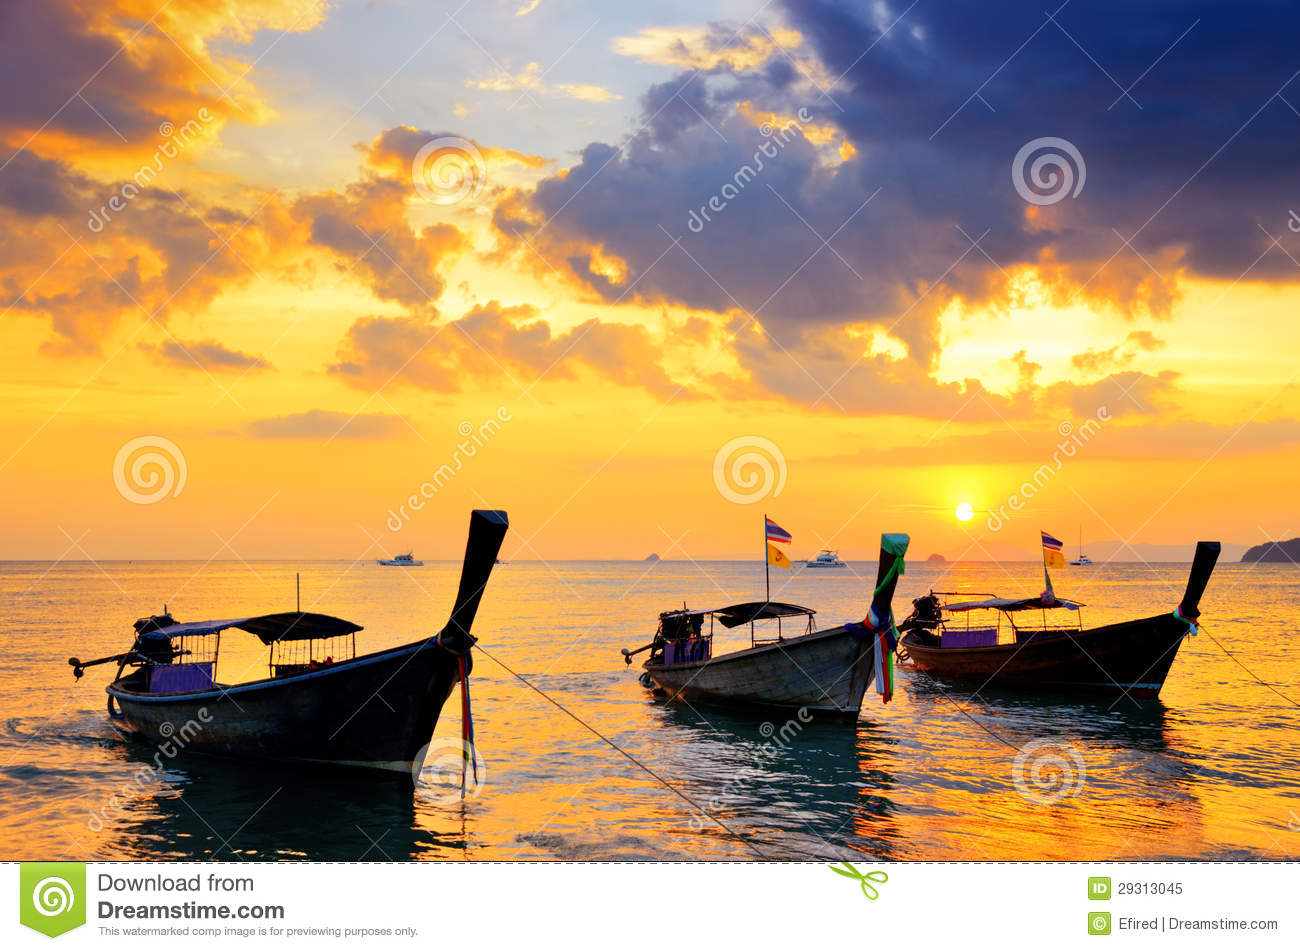 Traditional Thai Boats At Sunset Beach Royalty Free Stock Photo - Image: 29313045